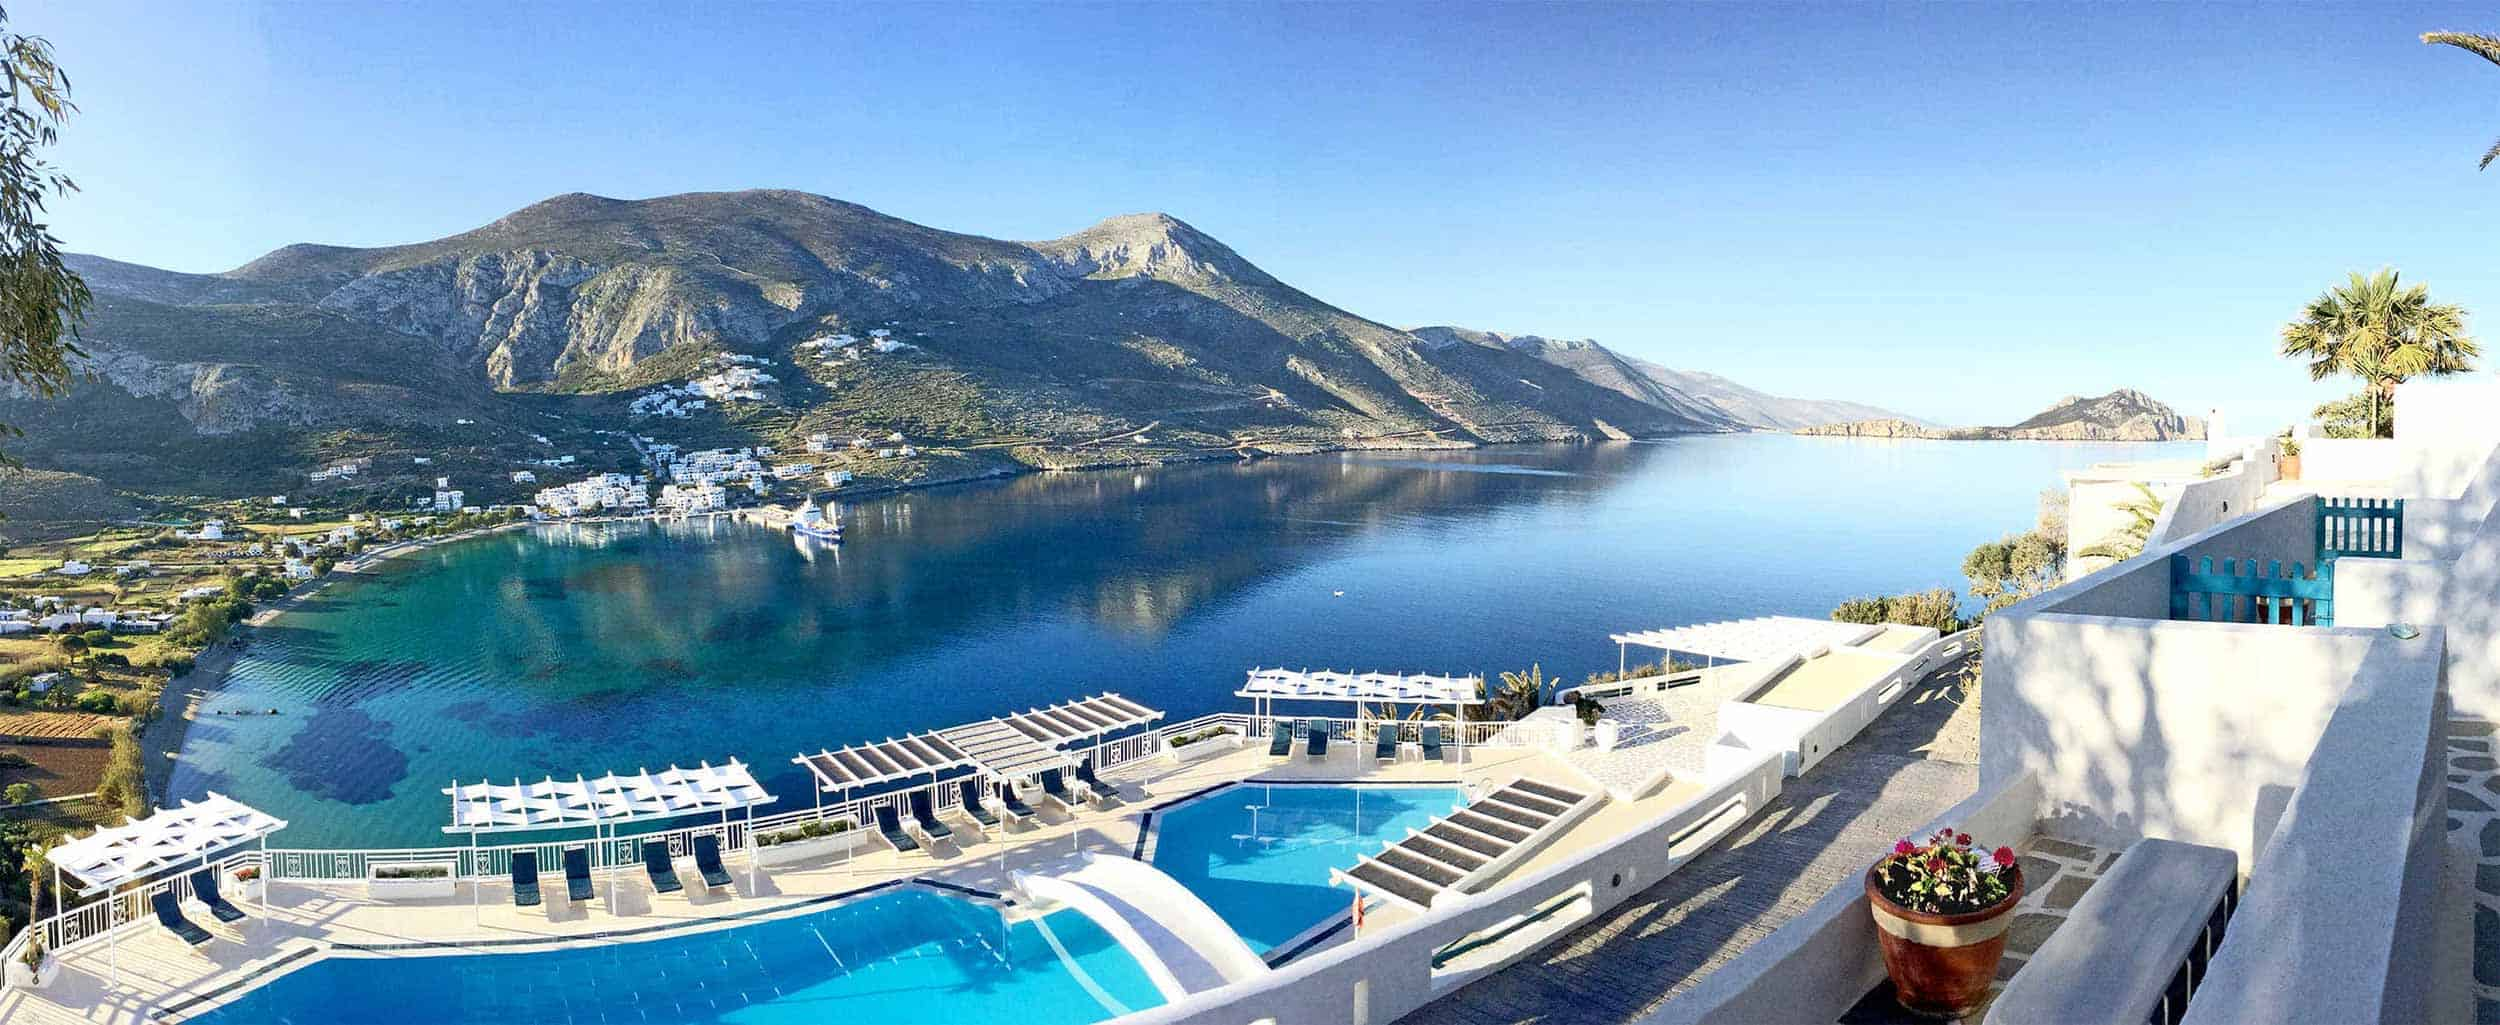 aegialis-hotel-and-spa-aegean-greece